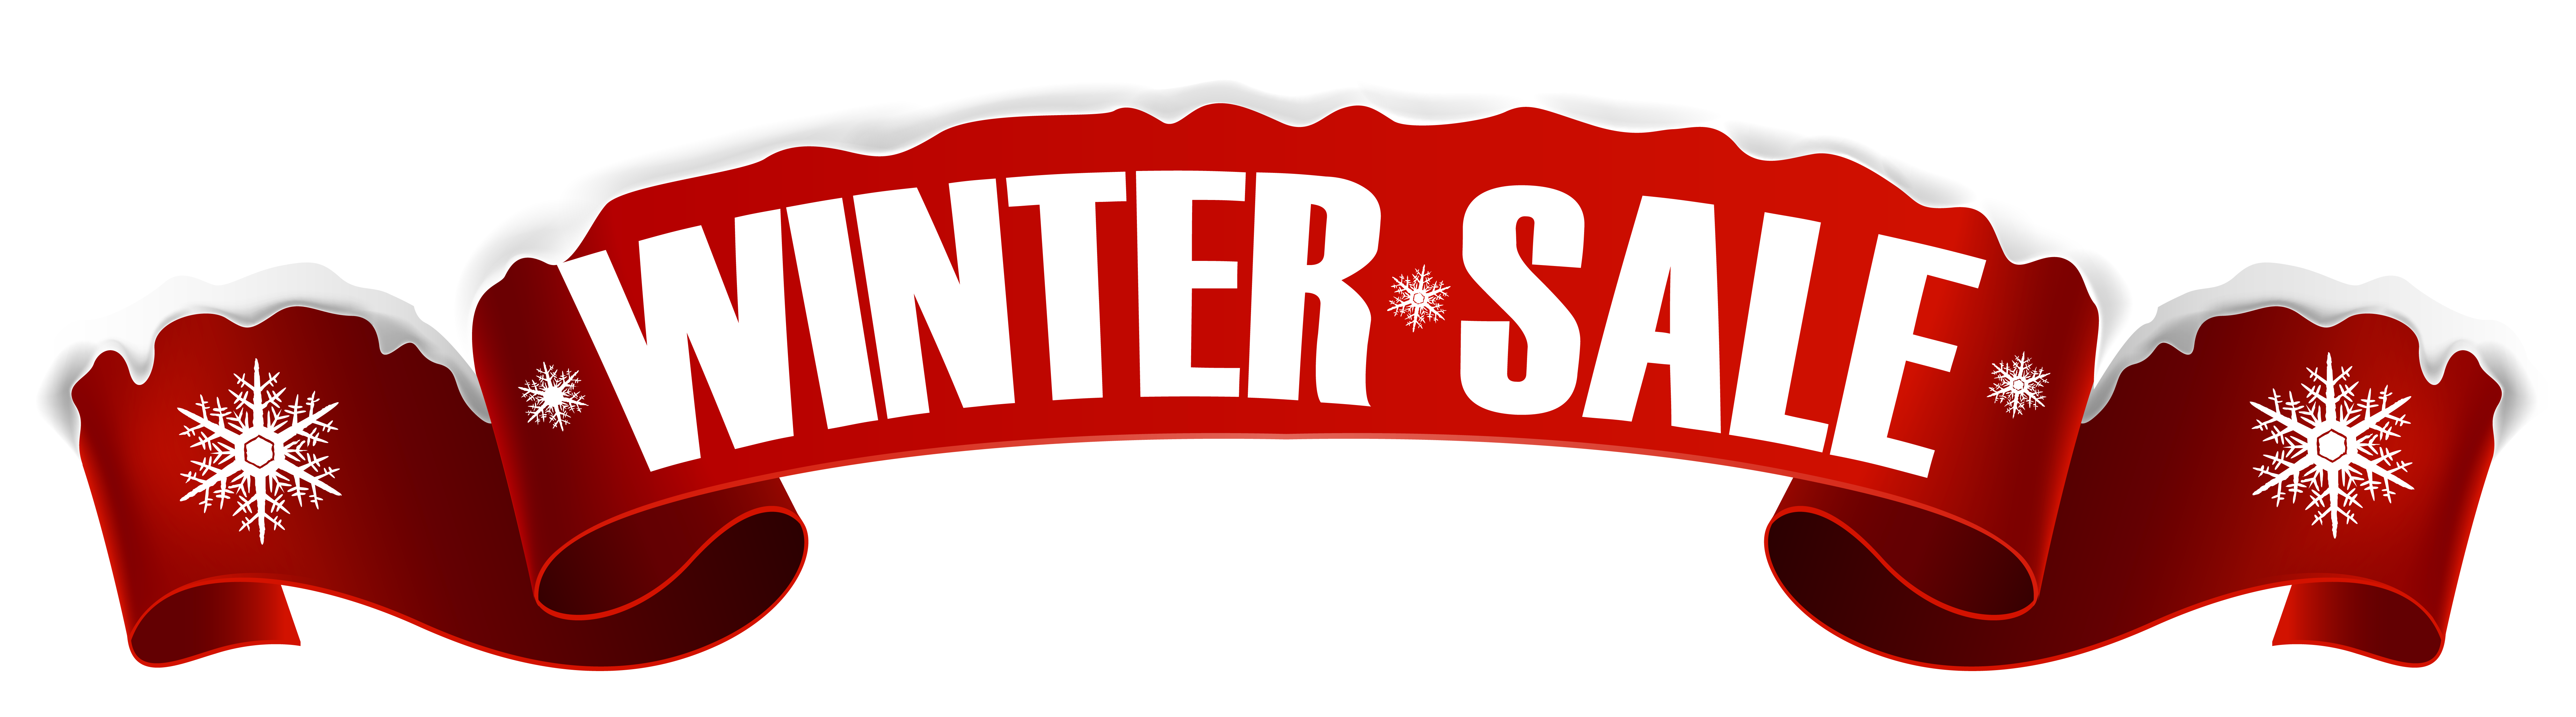 Sale banner transparent png. Name clipart winter